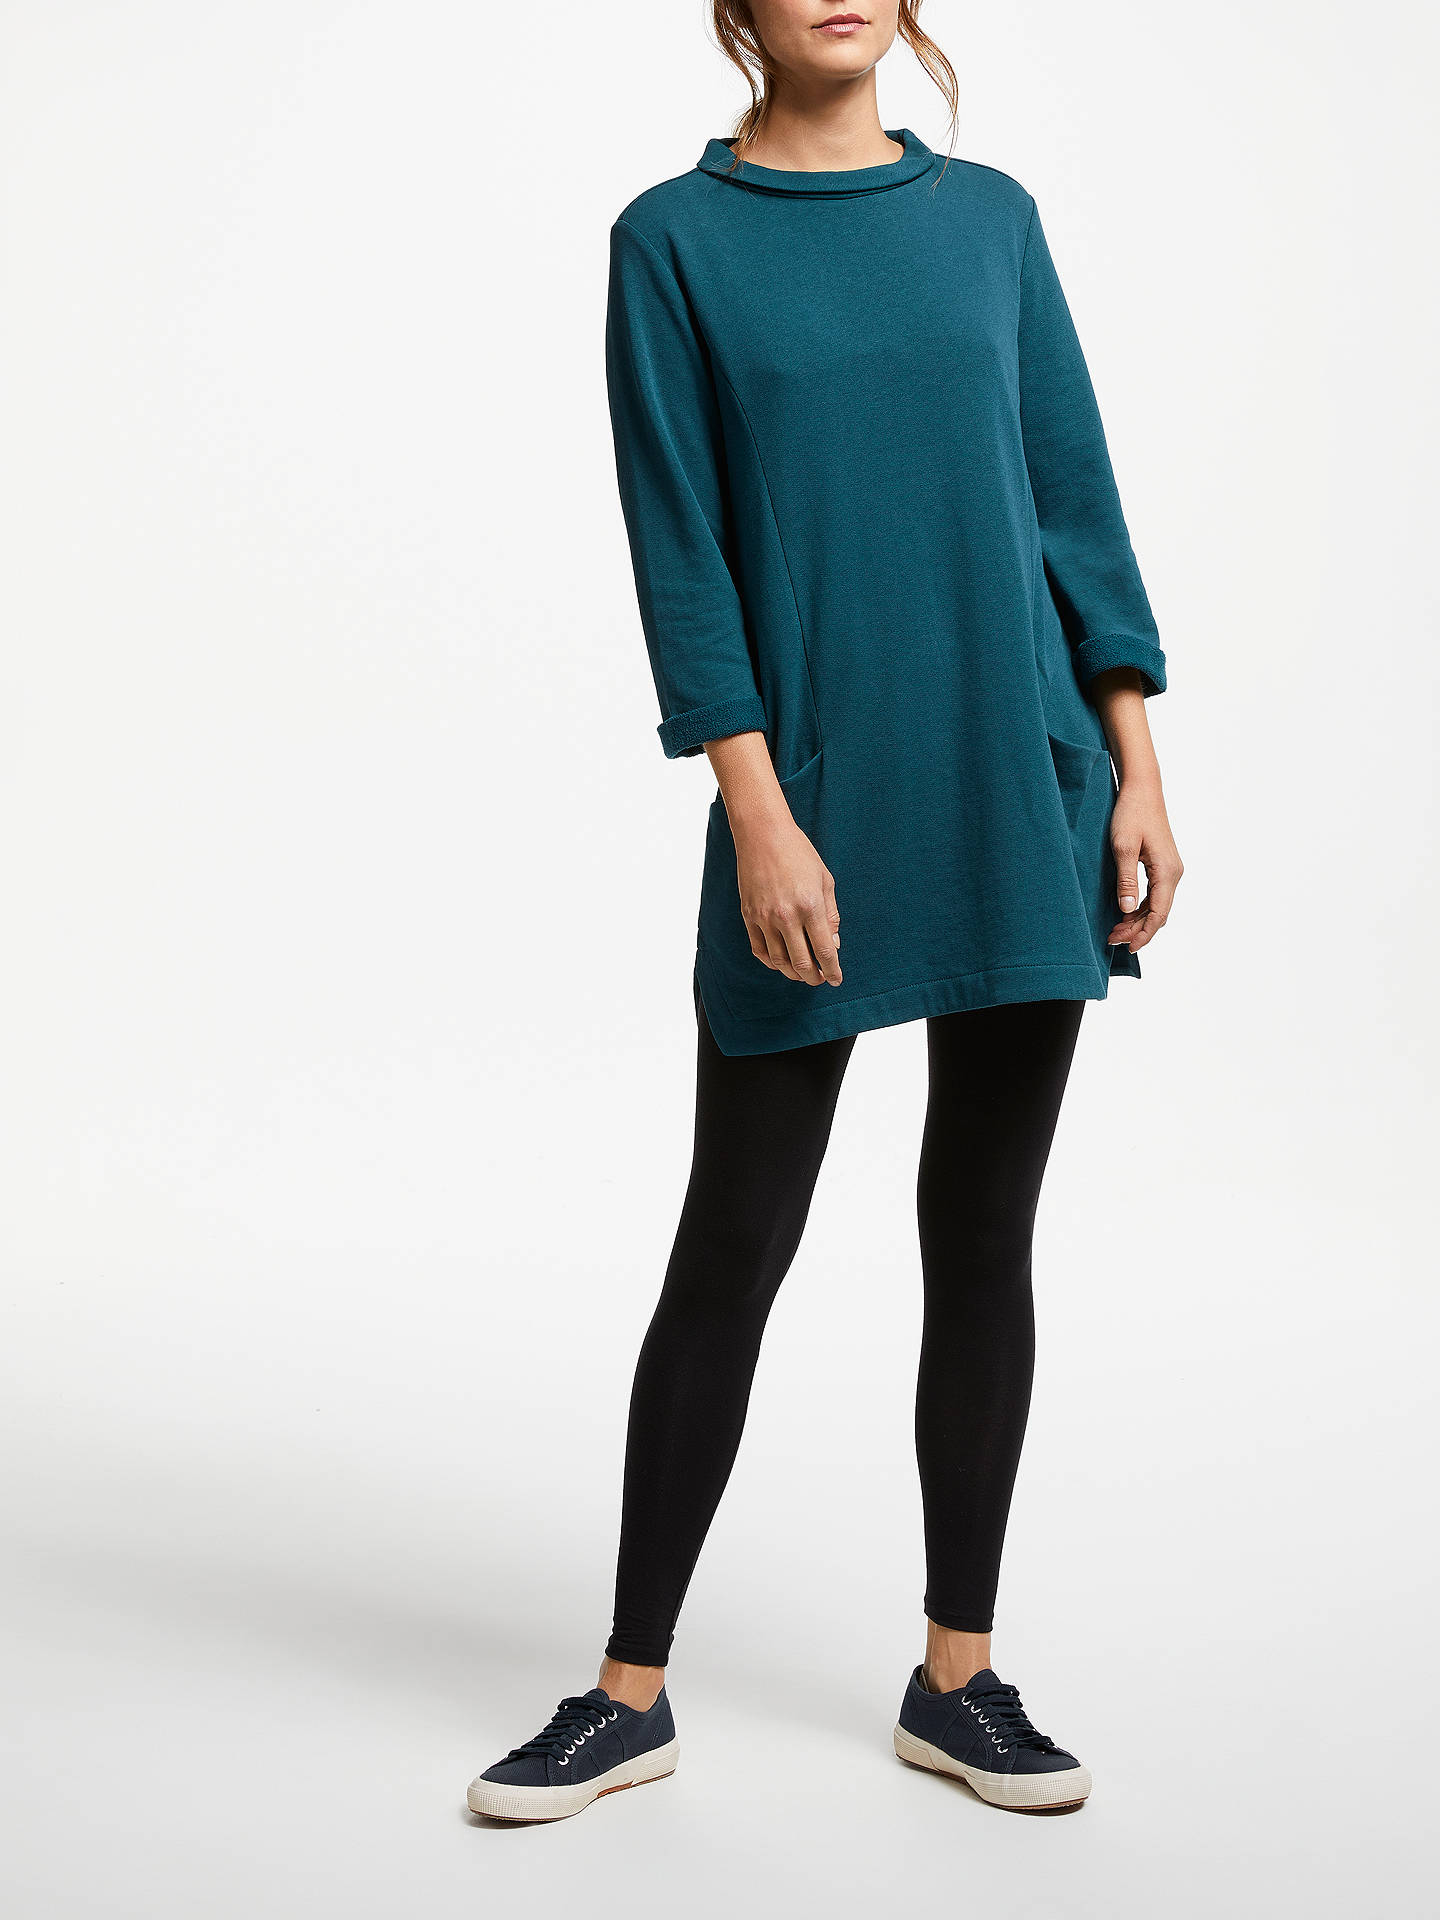 Buy Seasalt Dark Skies Tunic, Dark Lake, 16 Online at johnlewis.com